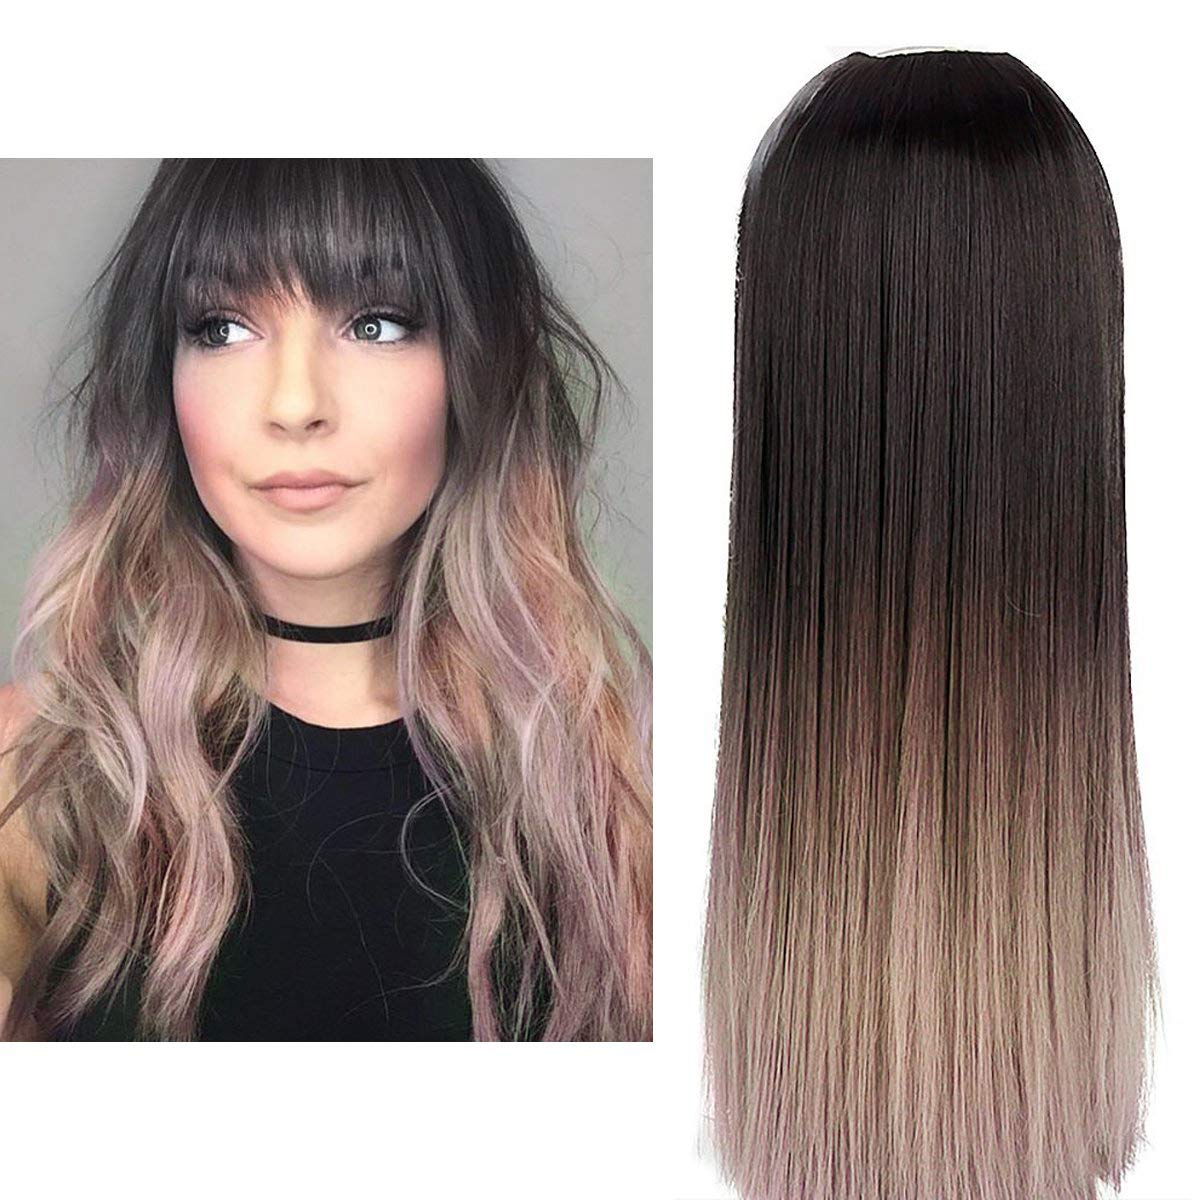 """Ombre Clip in Hair Extension Black Pink Straight Long Thick Full Head One Piece U shape 24"""" 0.37lb 170g Synthetic Hairpiece For Women Natural Real Hair Piece Japan High Temperature Fiber(UH16#4TBT)"""